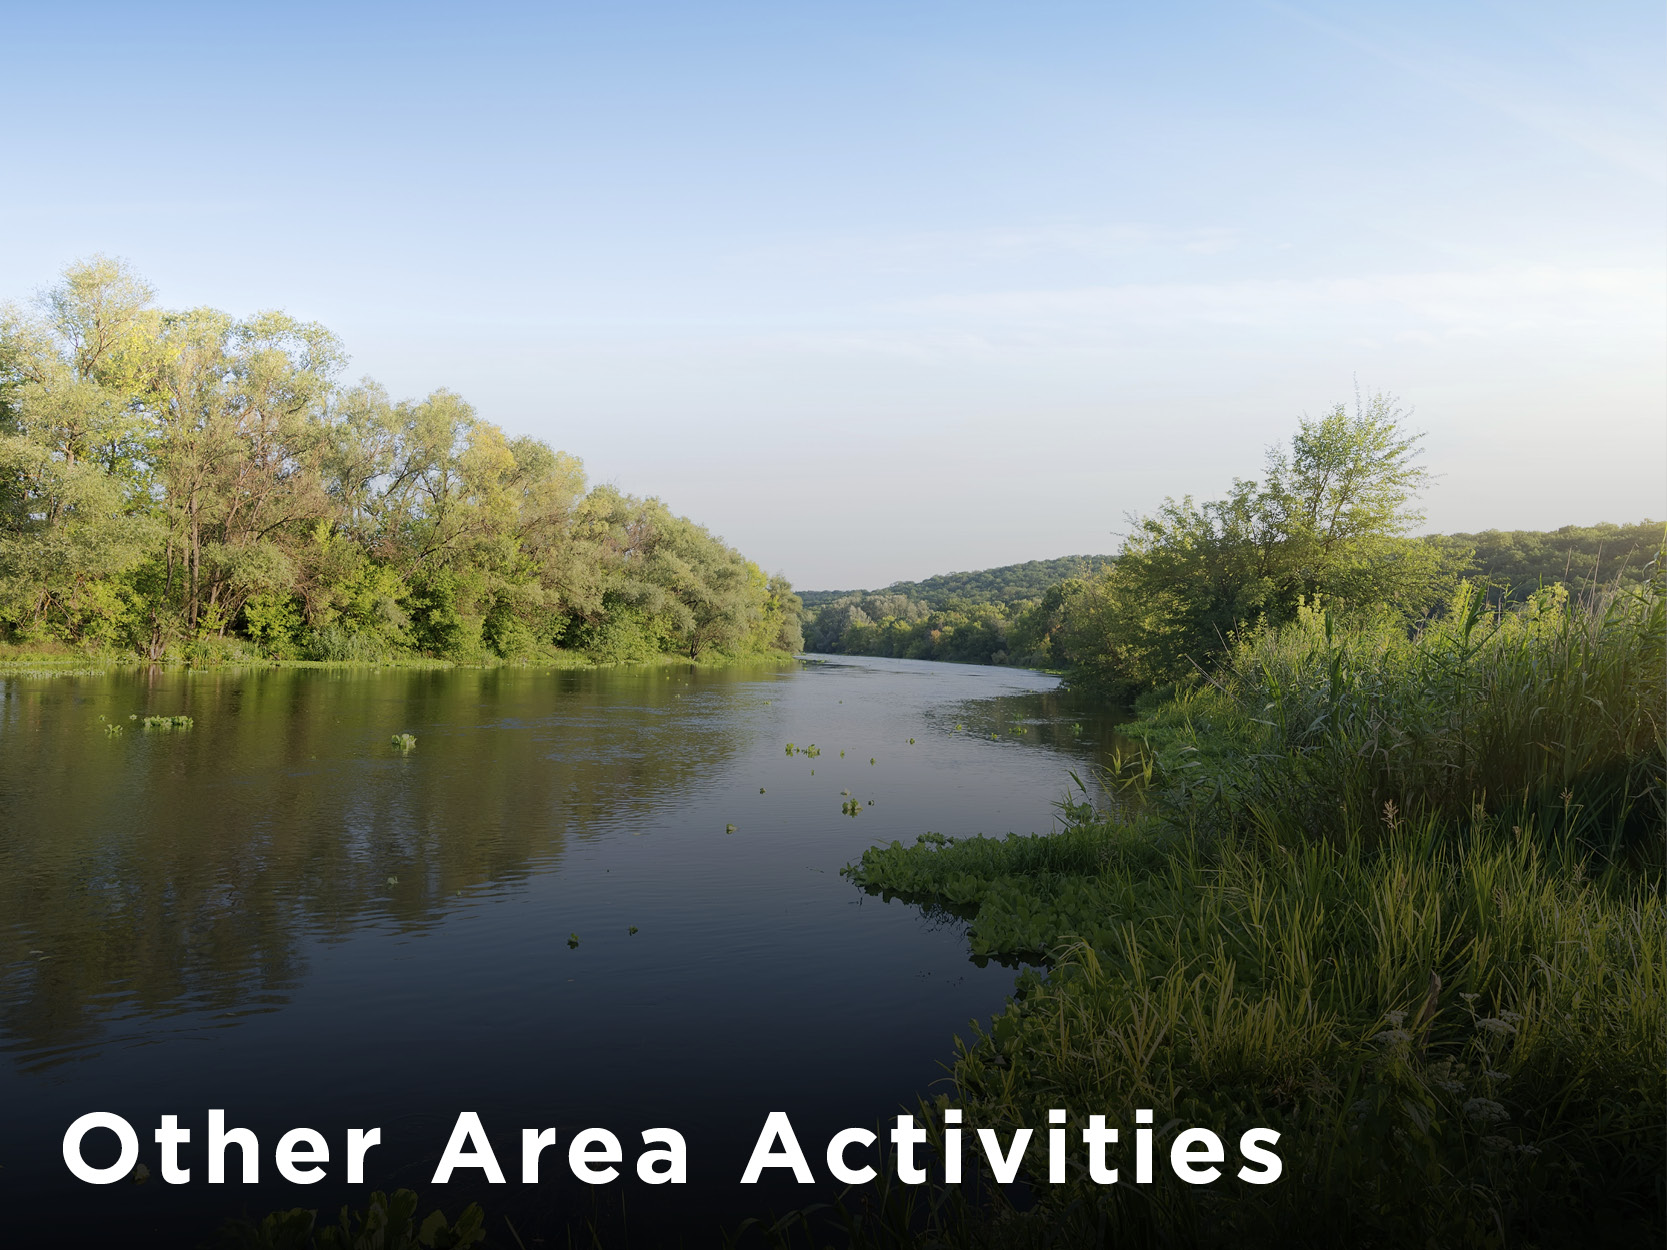 Other Area Activities